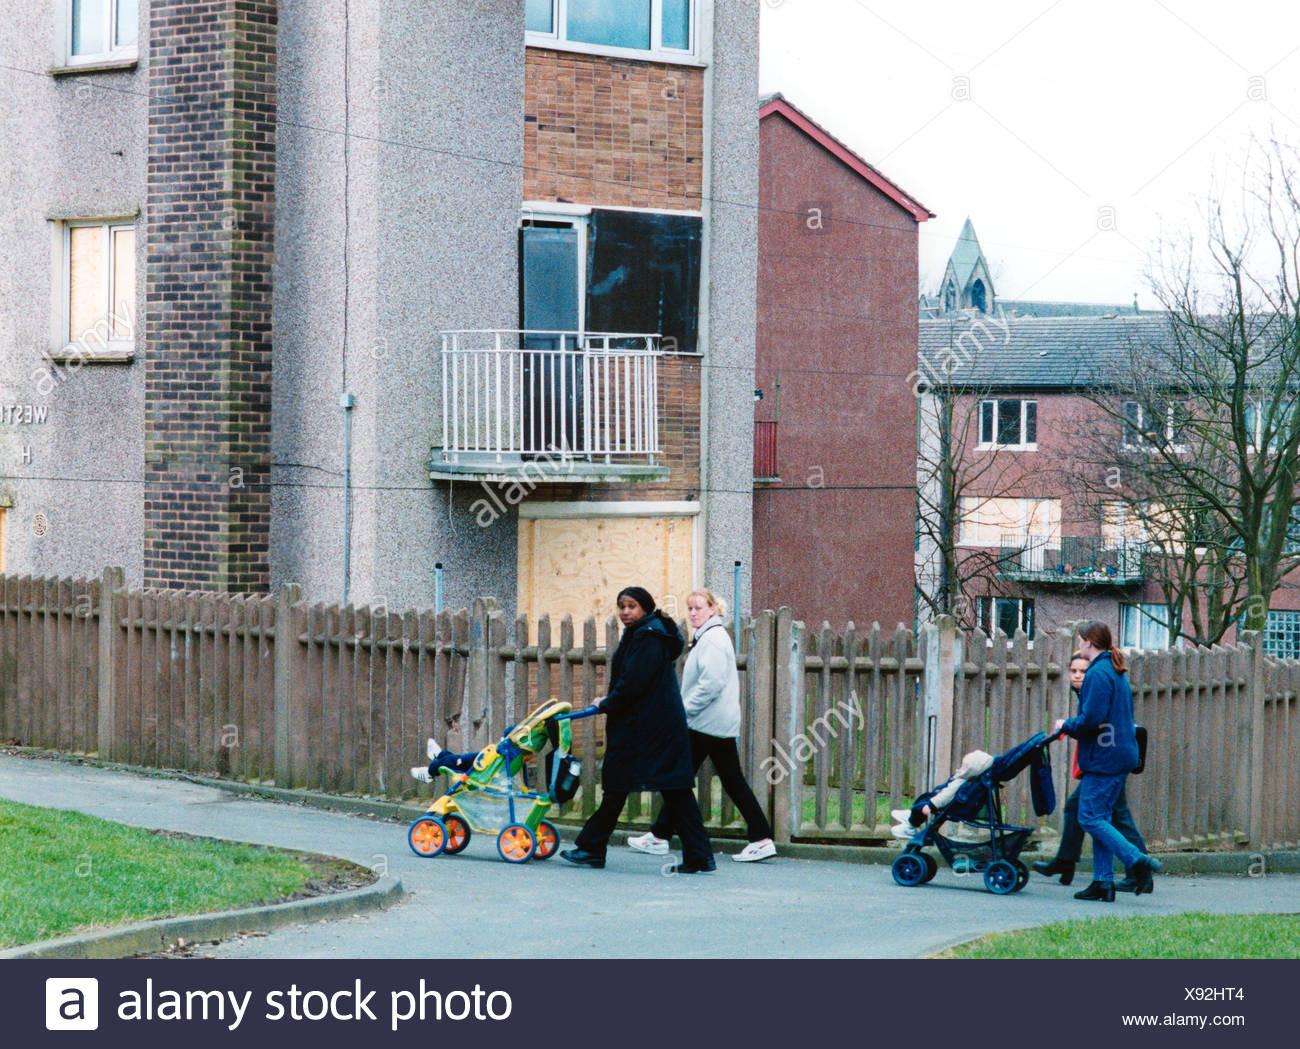 bradford council sofa removal simmons upholstery scarlet reviews deprived child uk stock photos images alamy women walking their babies in buggys on housing estate yorkshire image